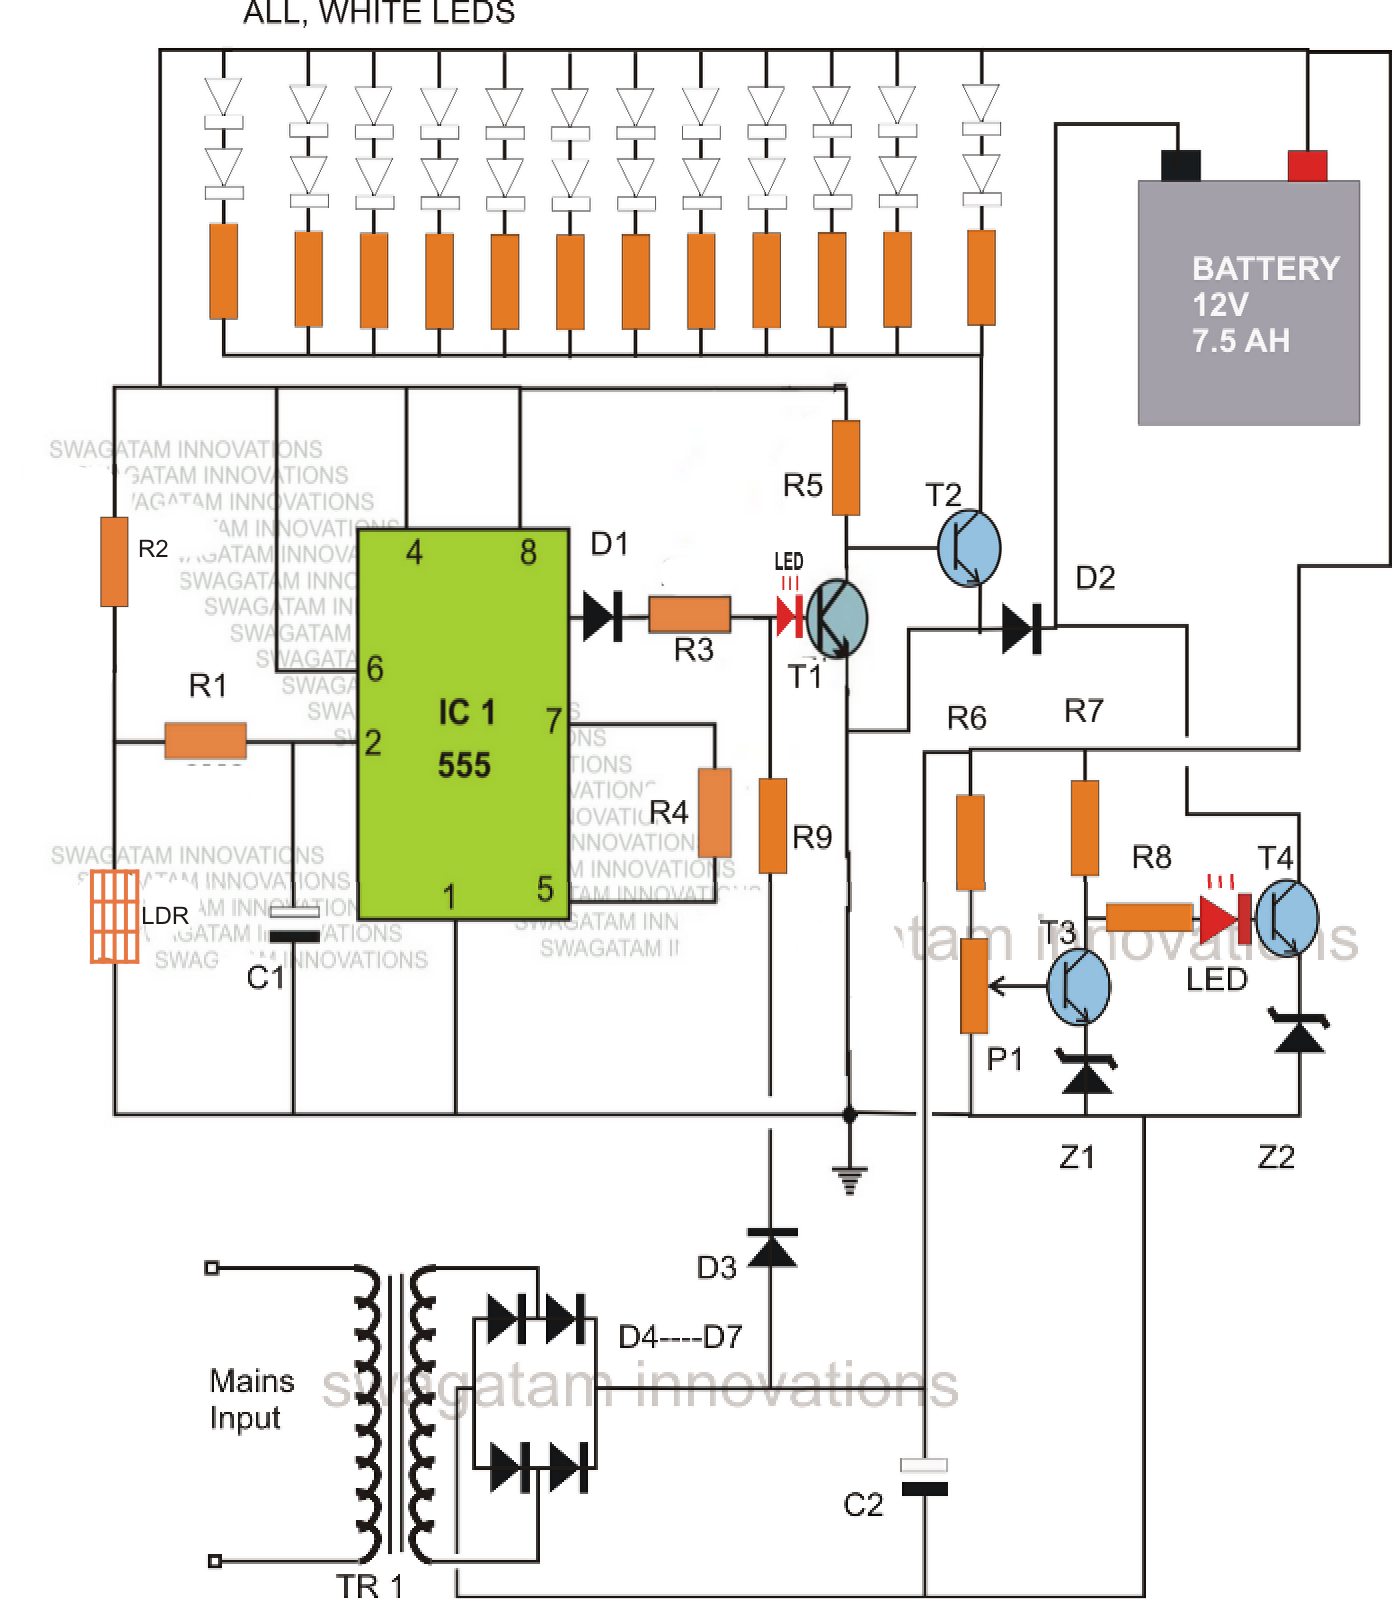 The Blog Post Comprehensively Elucidates A Simple Led Emergency Light Circuit Using Flashlight Bulb Electronic Projects With Automatic Battery Cut Of Which Might Be Developed By Every New Hobbyist